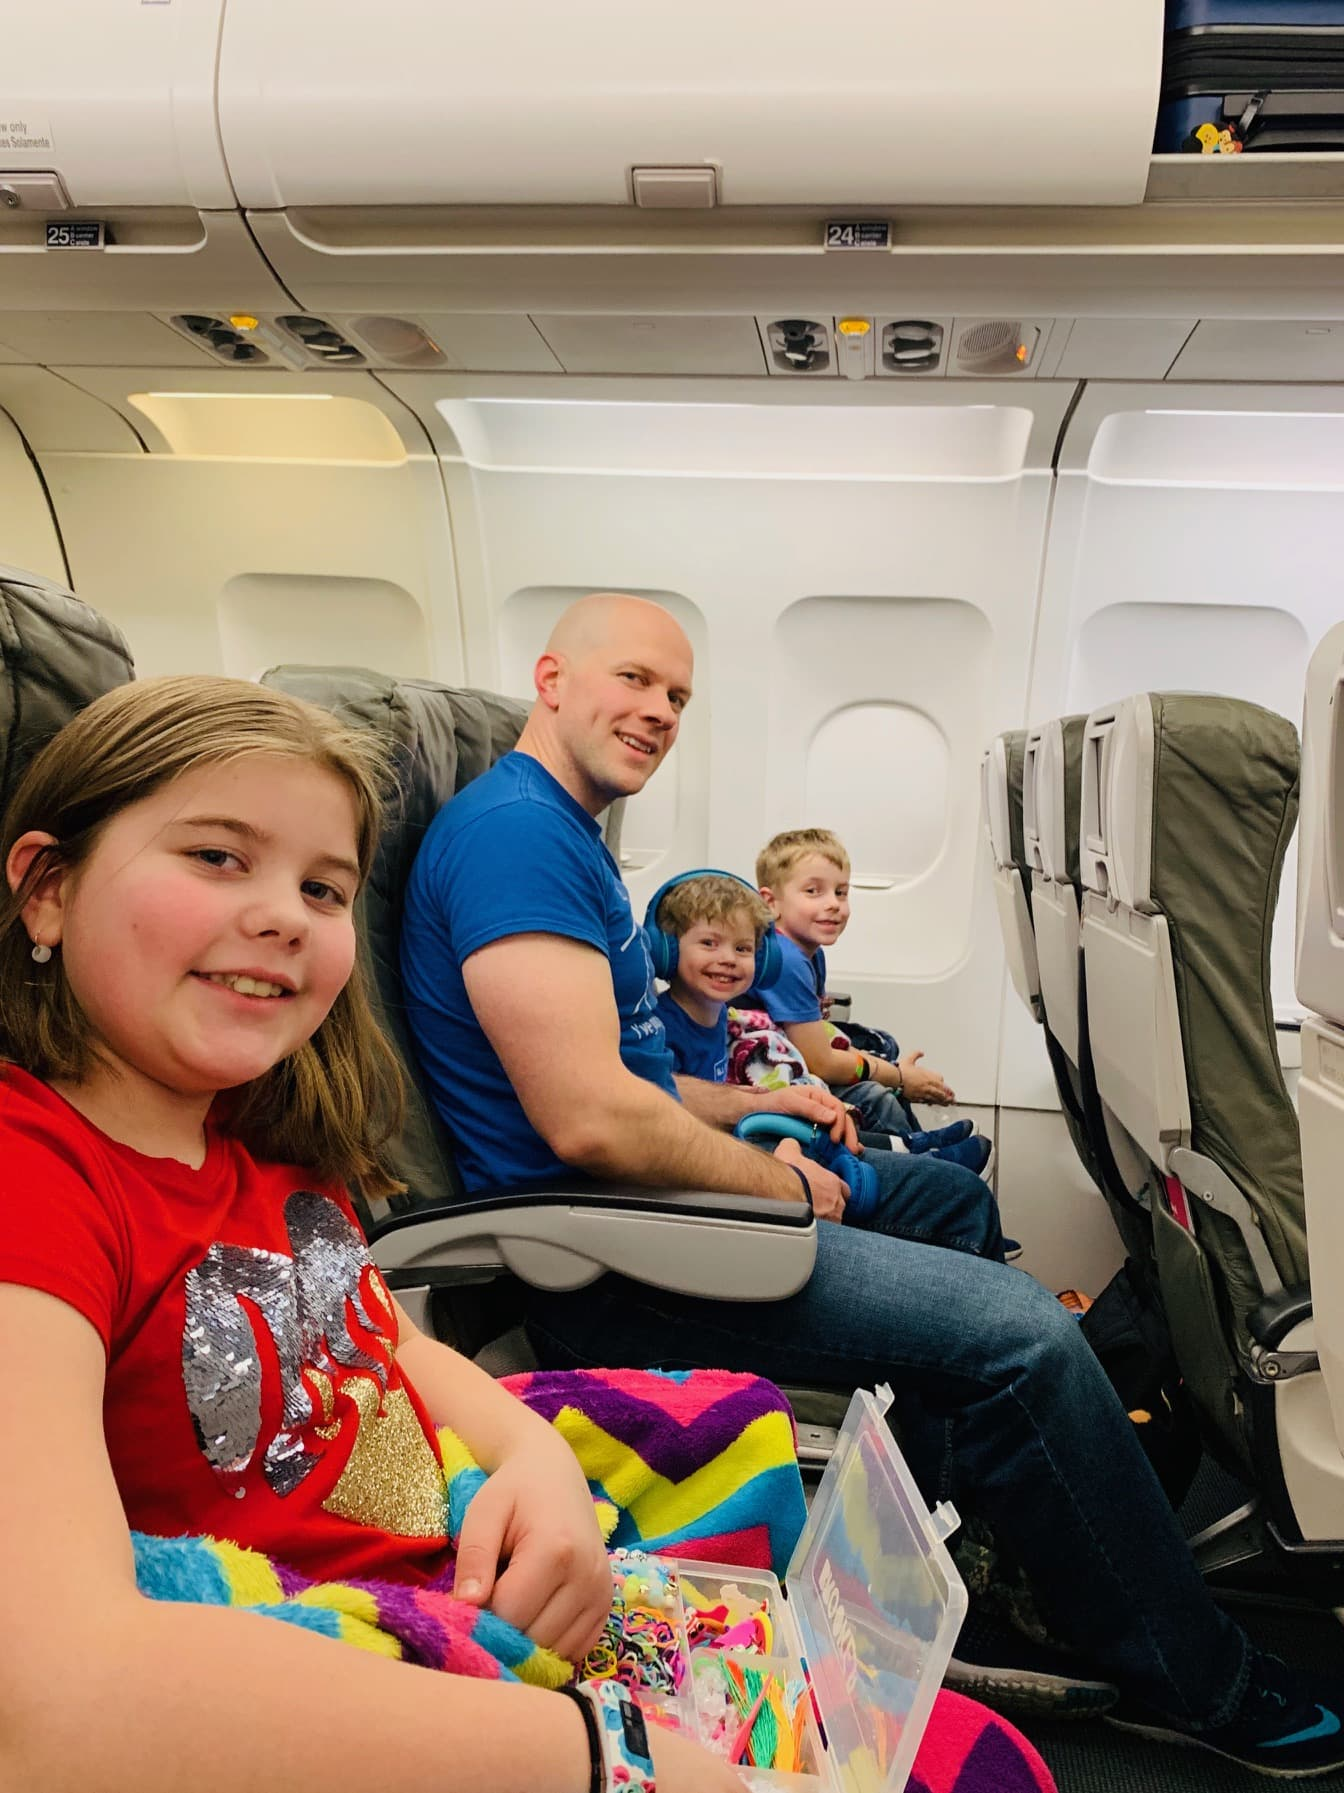 Gordon and the kids on a plane